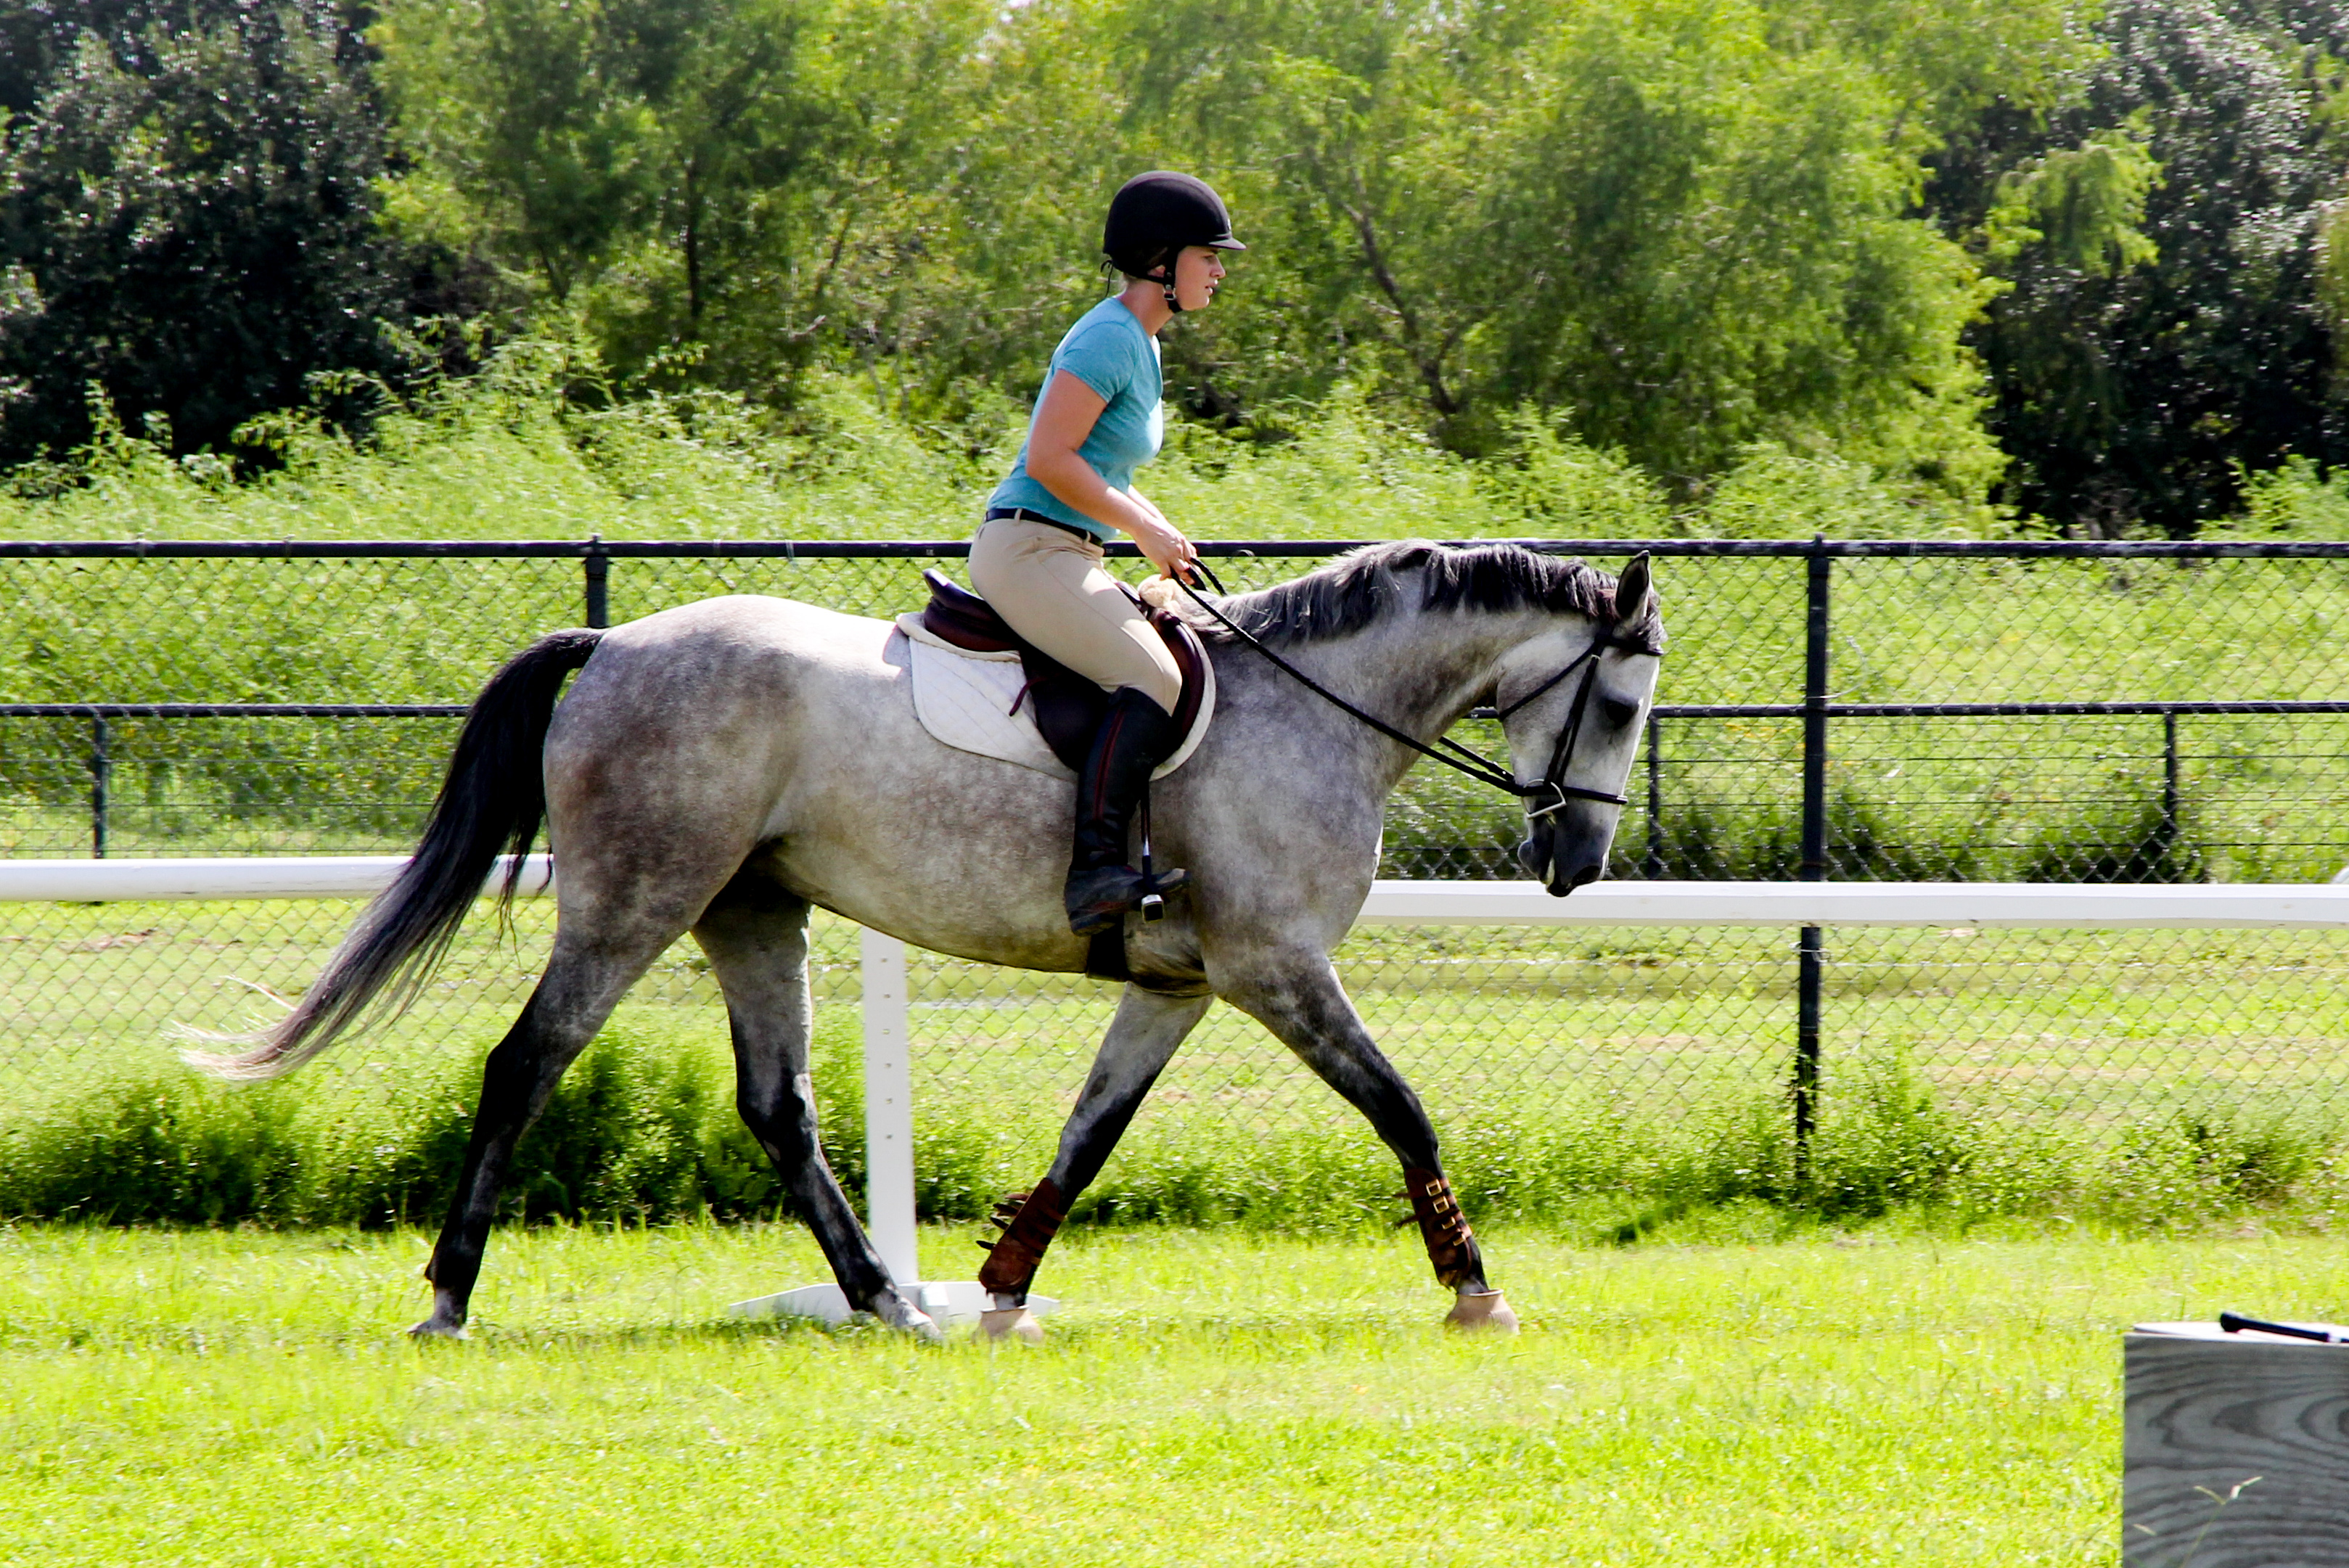 Blackjack Lane Equestrian Hunter Jumper Equitation And Dressage - 12 equestrian places in the us